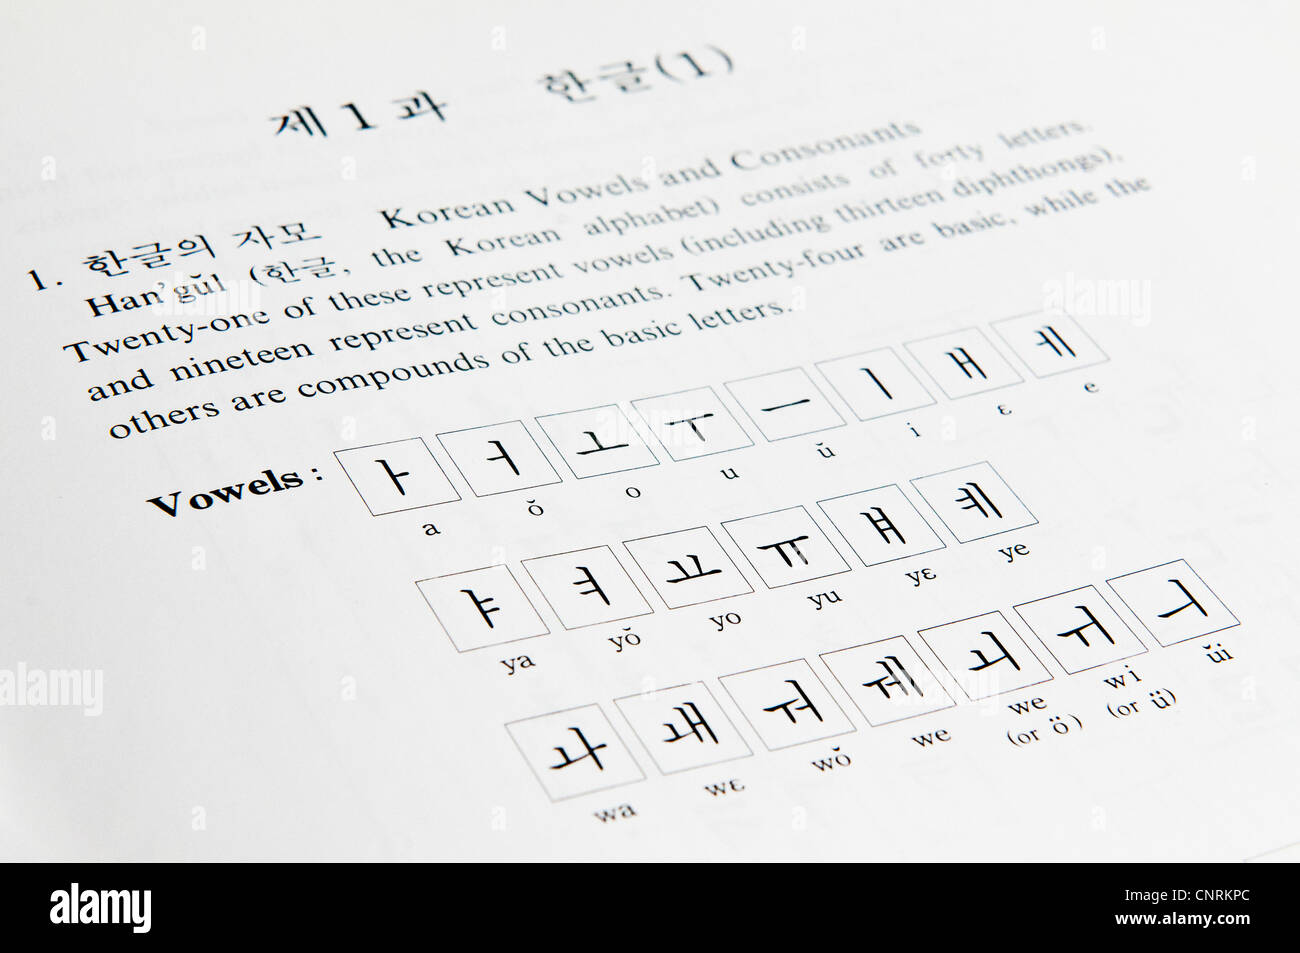 Stock Photo Text Book For How To Read And Write Korean For Foreigners Writing  A Letter